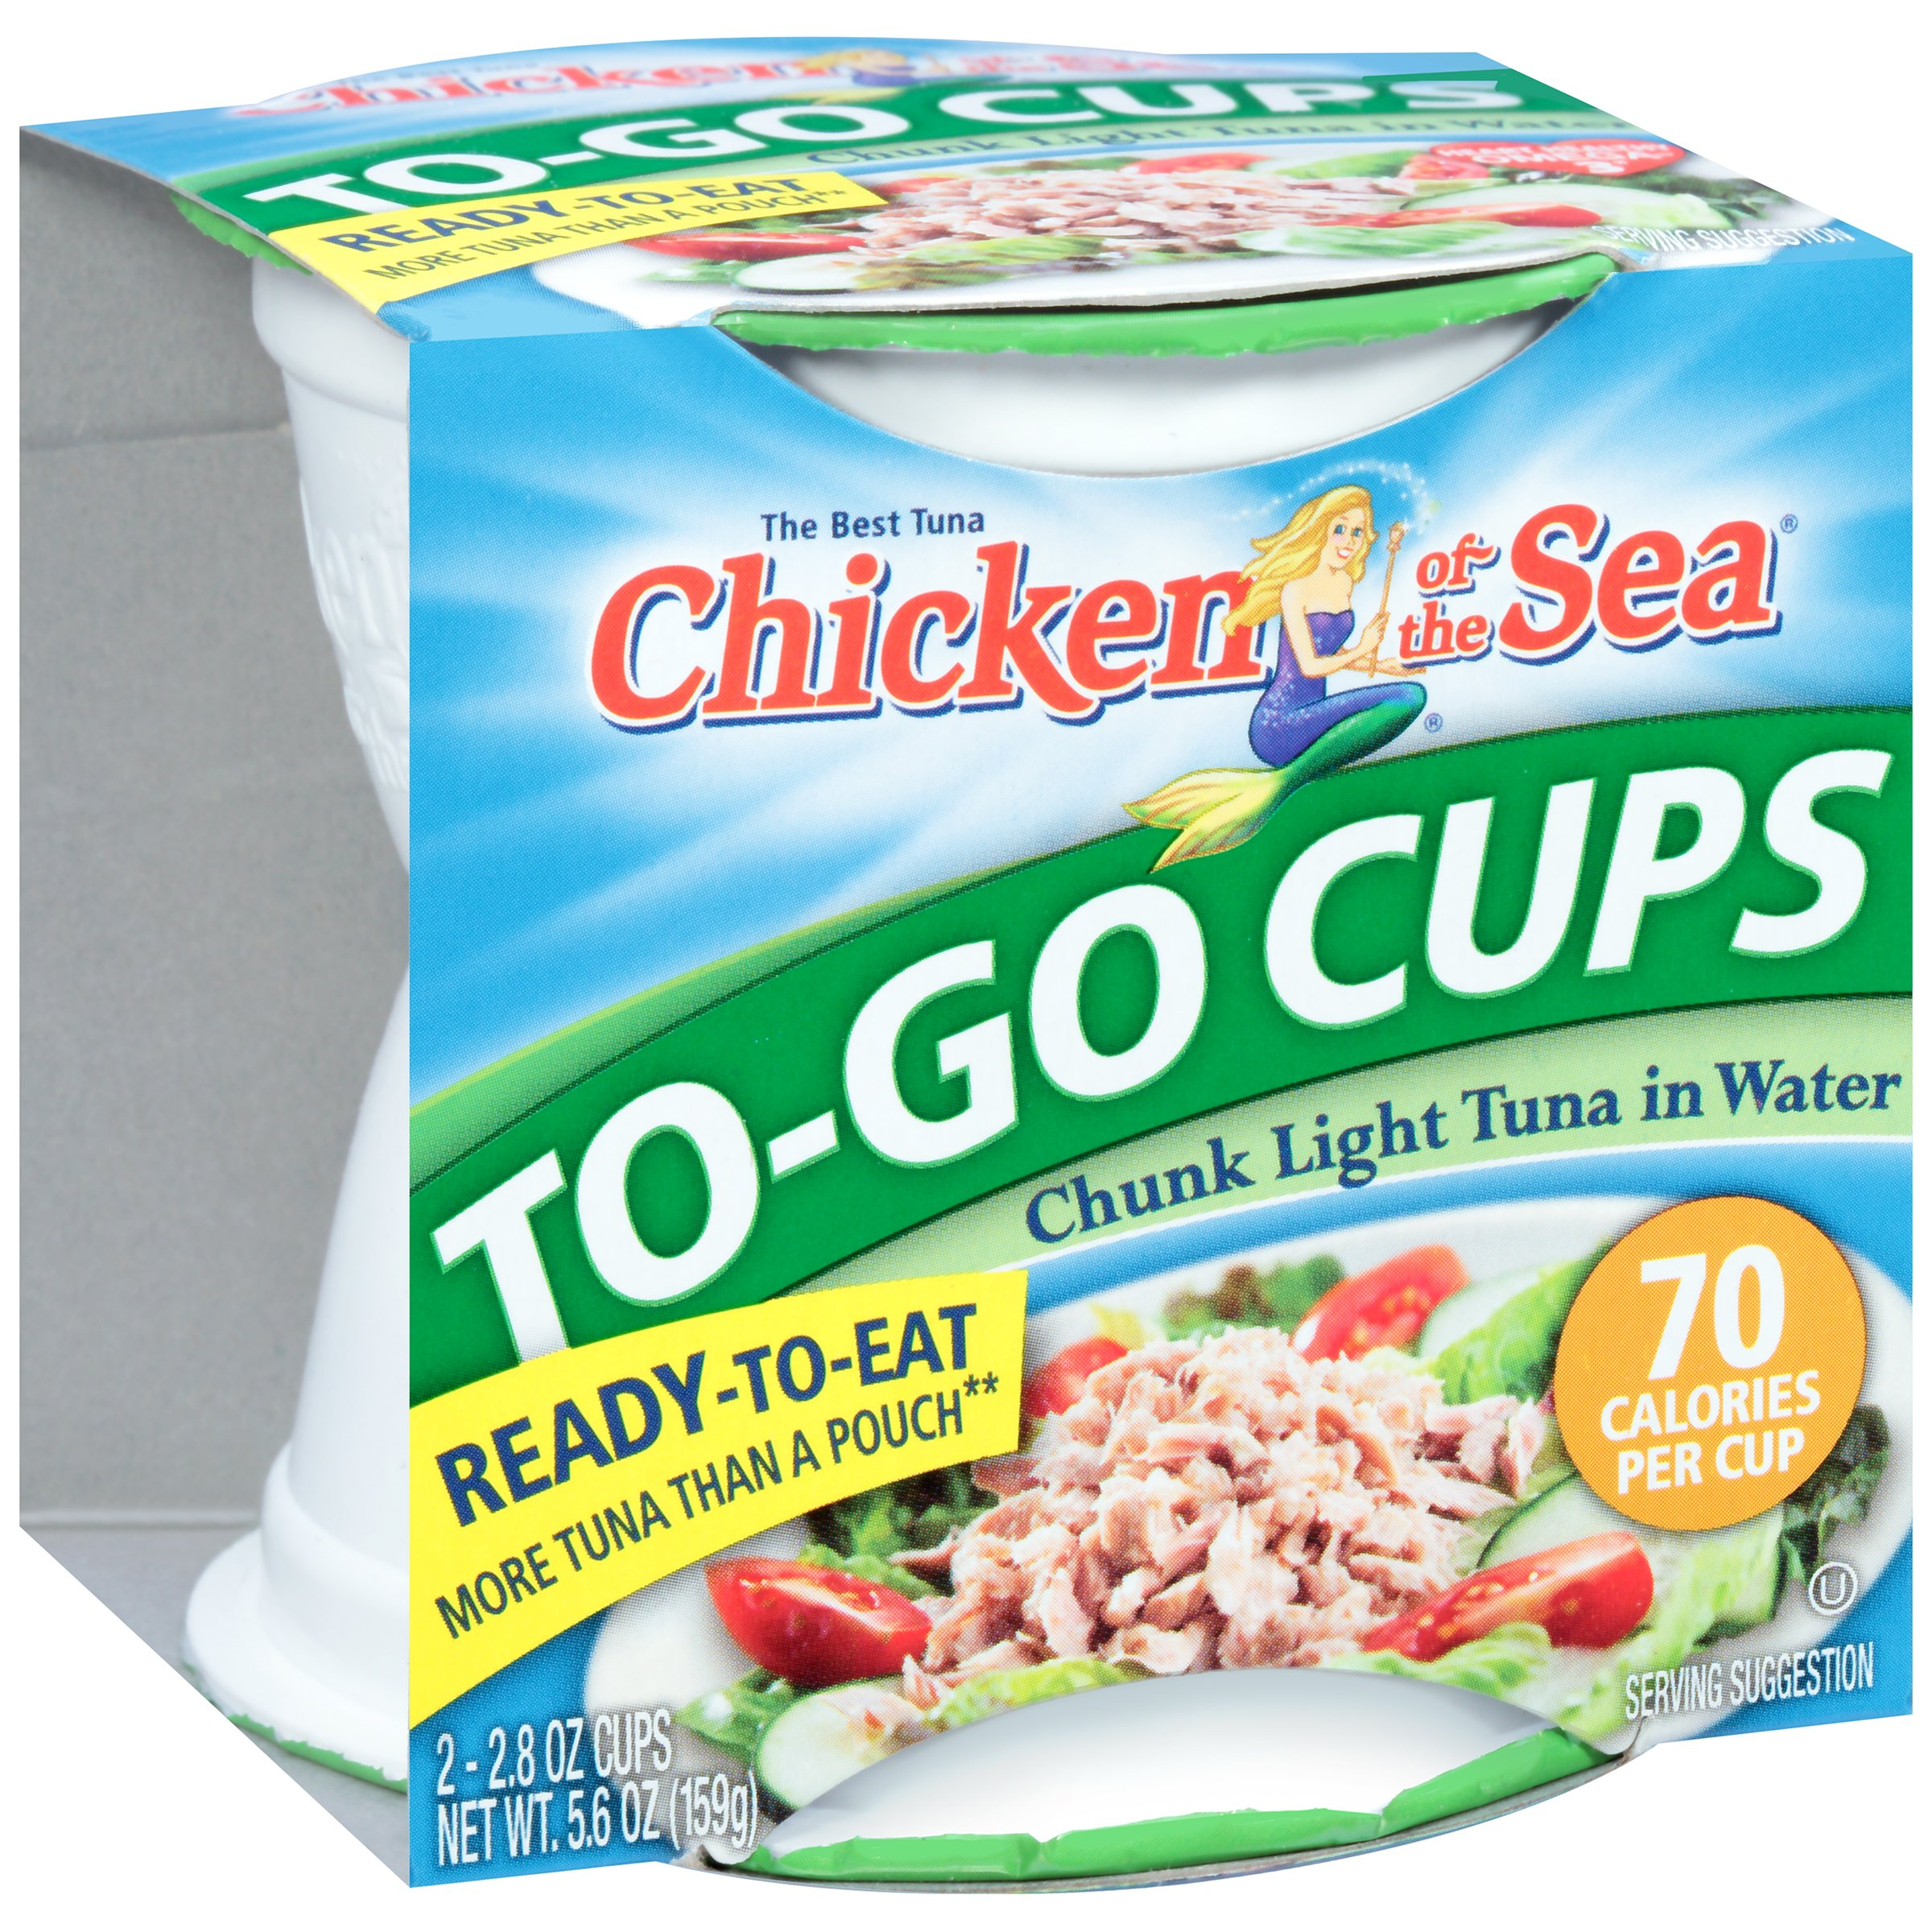 Chicken of the Sea® Chunk Light Tuna in Water 2-2.8 oz. To-Go Cups 300